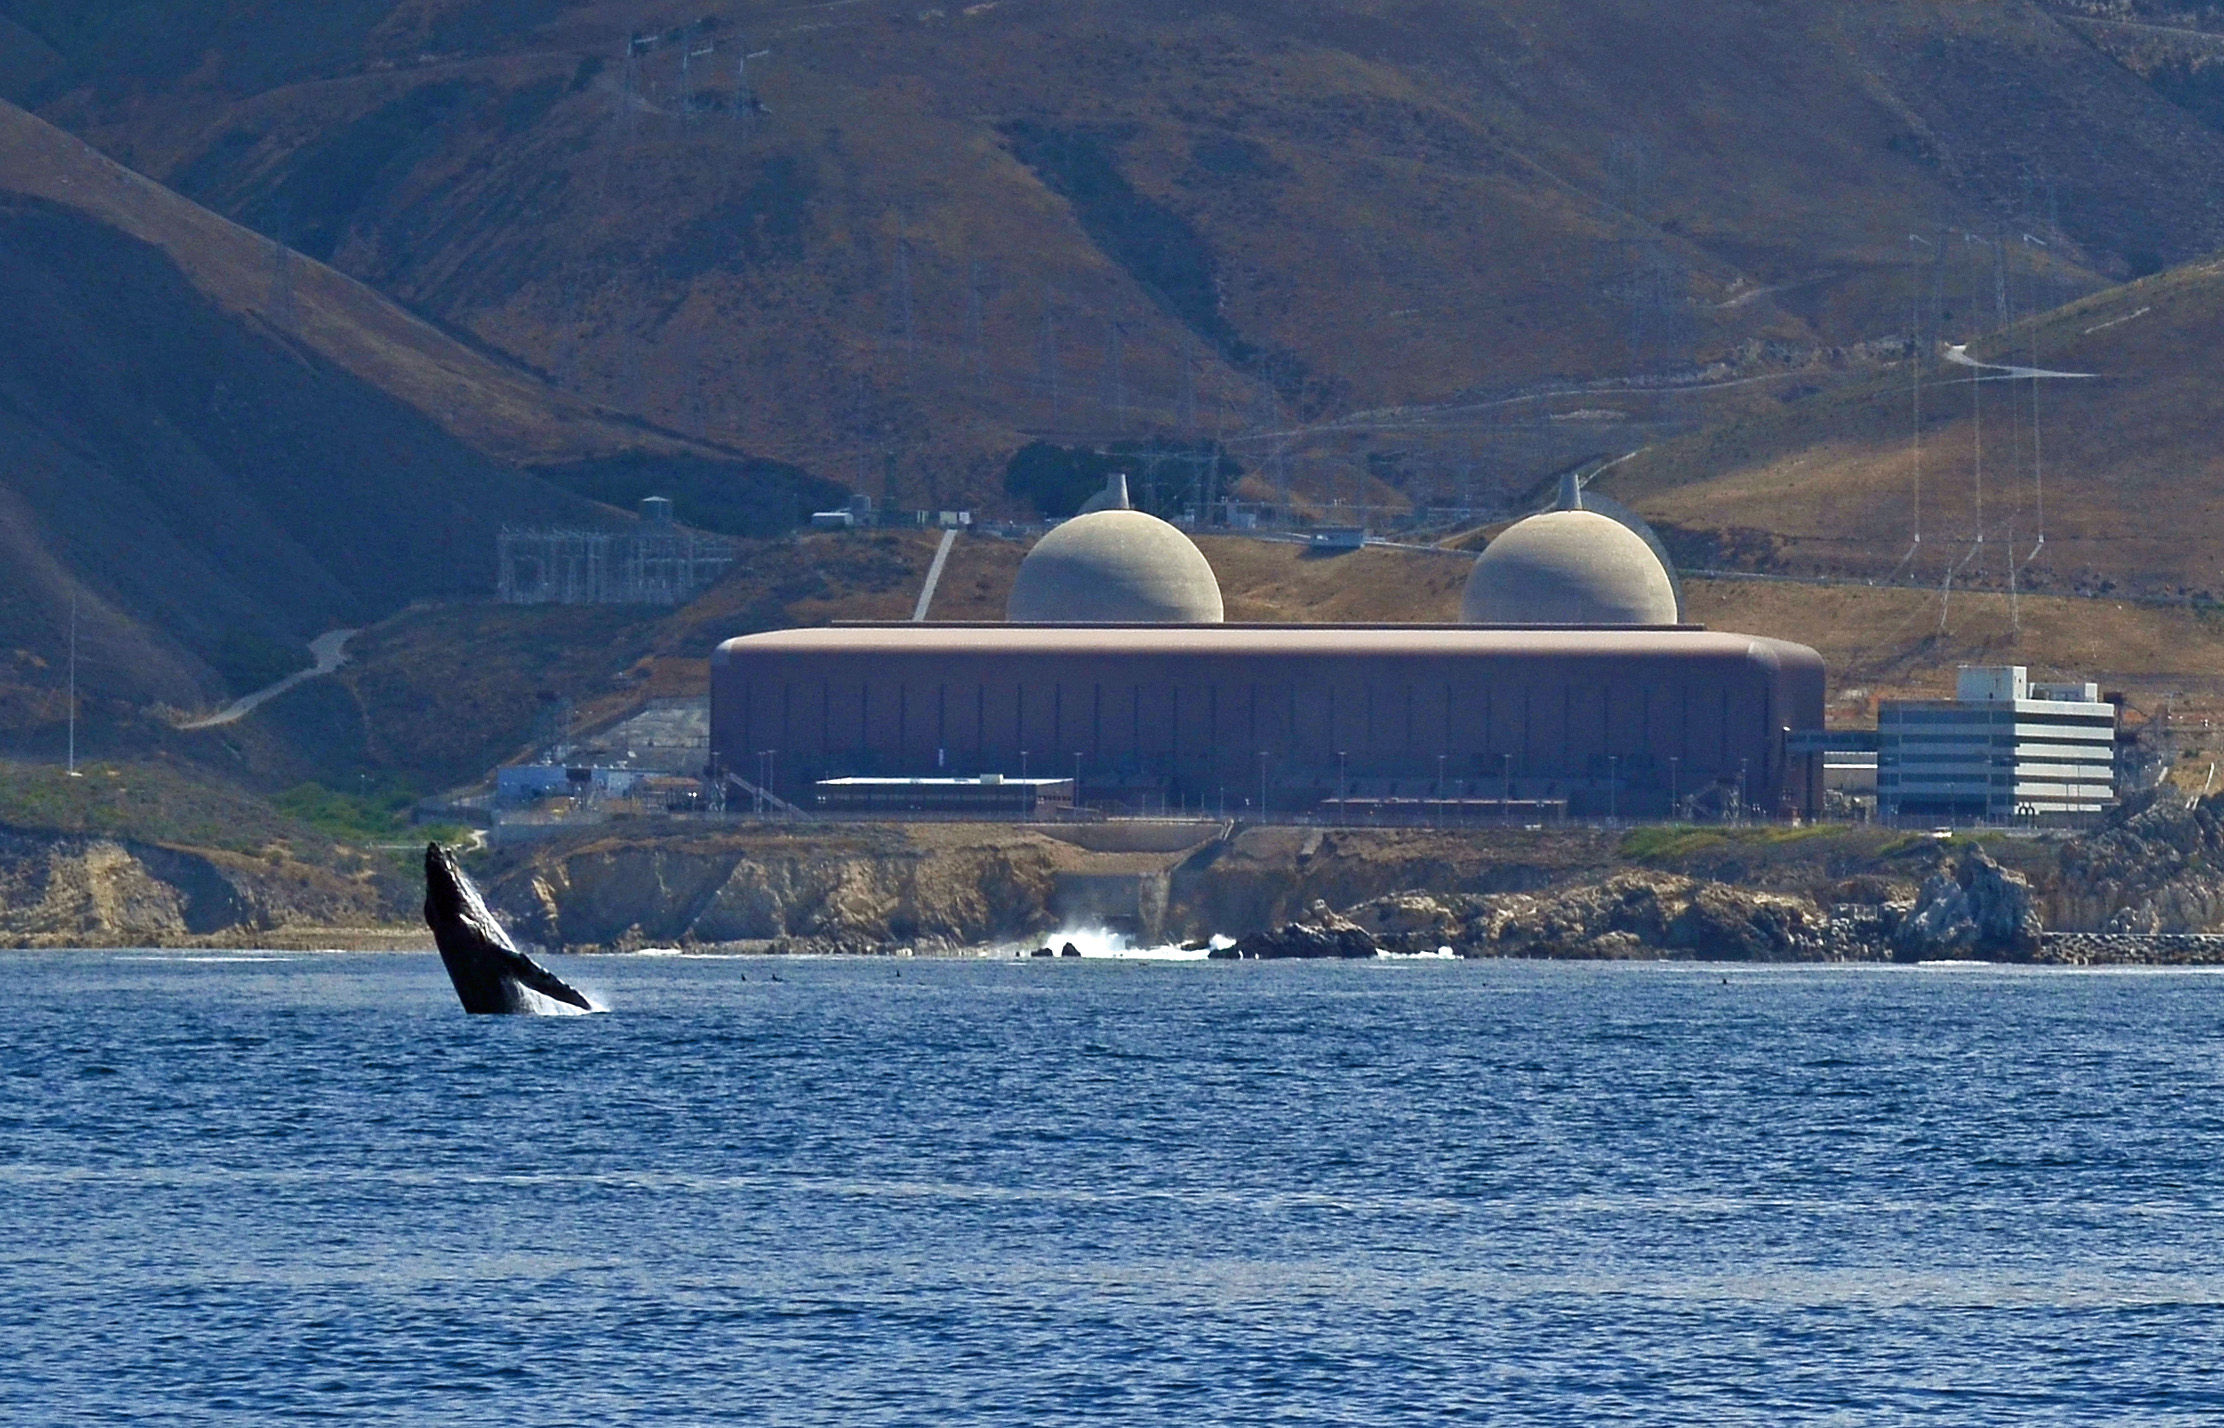 NUCLEAR PLANTS LIKE CALIFORNIA'S DIABLO CANYON GENERATE 63% OF AMERICA'S LOW CARBON ENERGY.